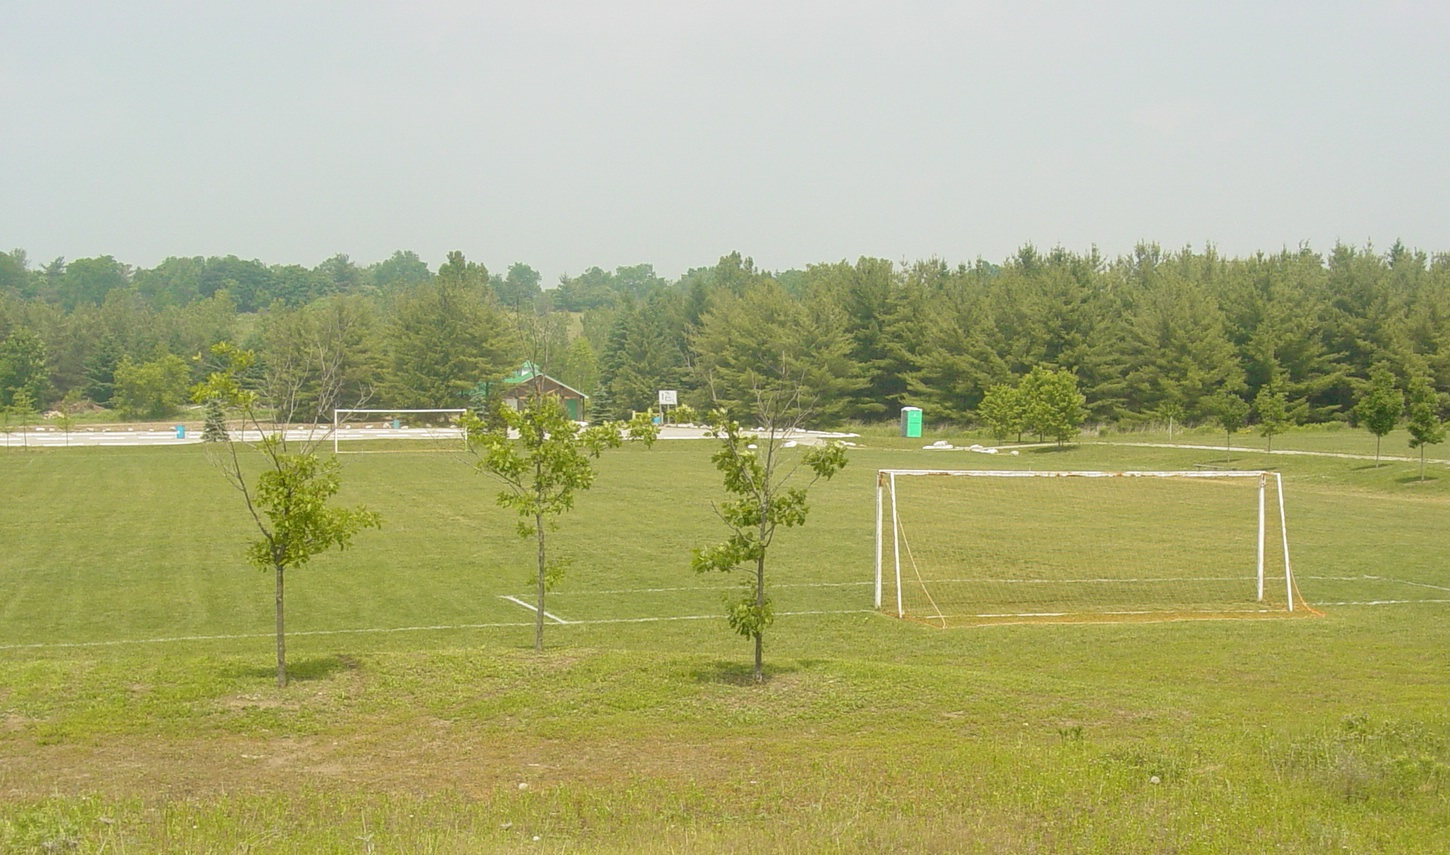 soccerfield crop